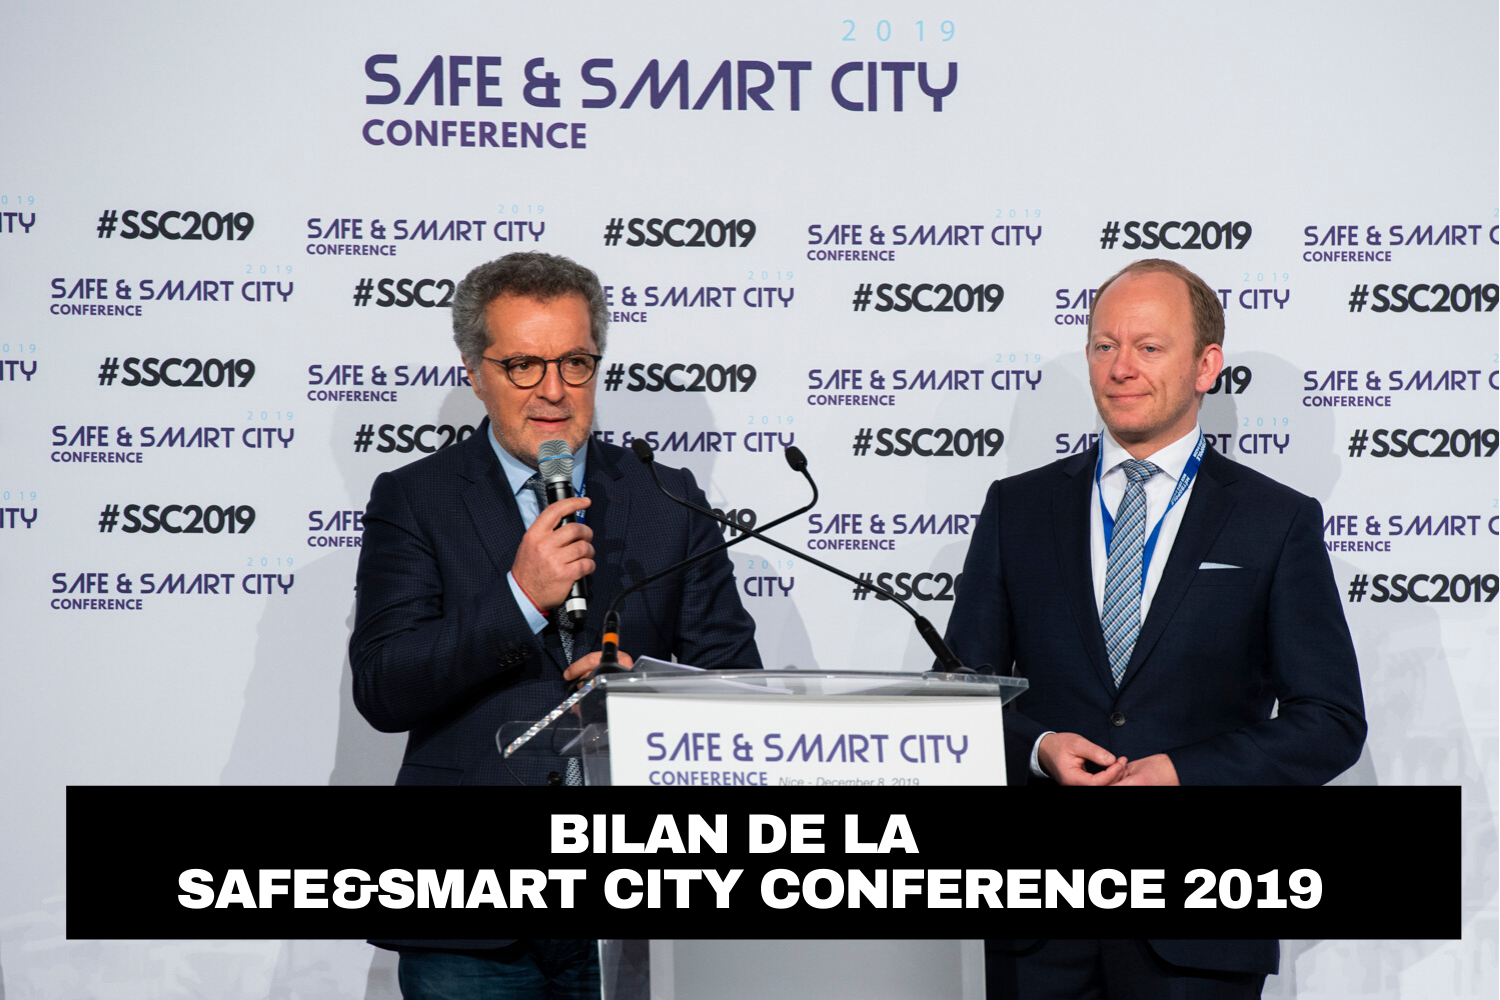 Bilan de la Safe & Smart City 2019